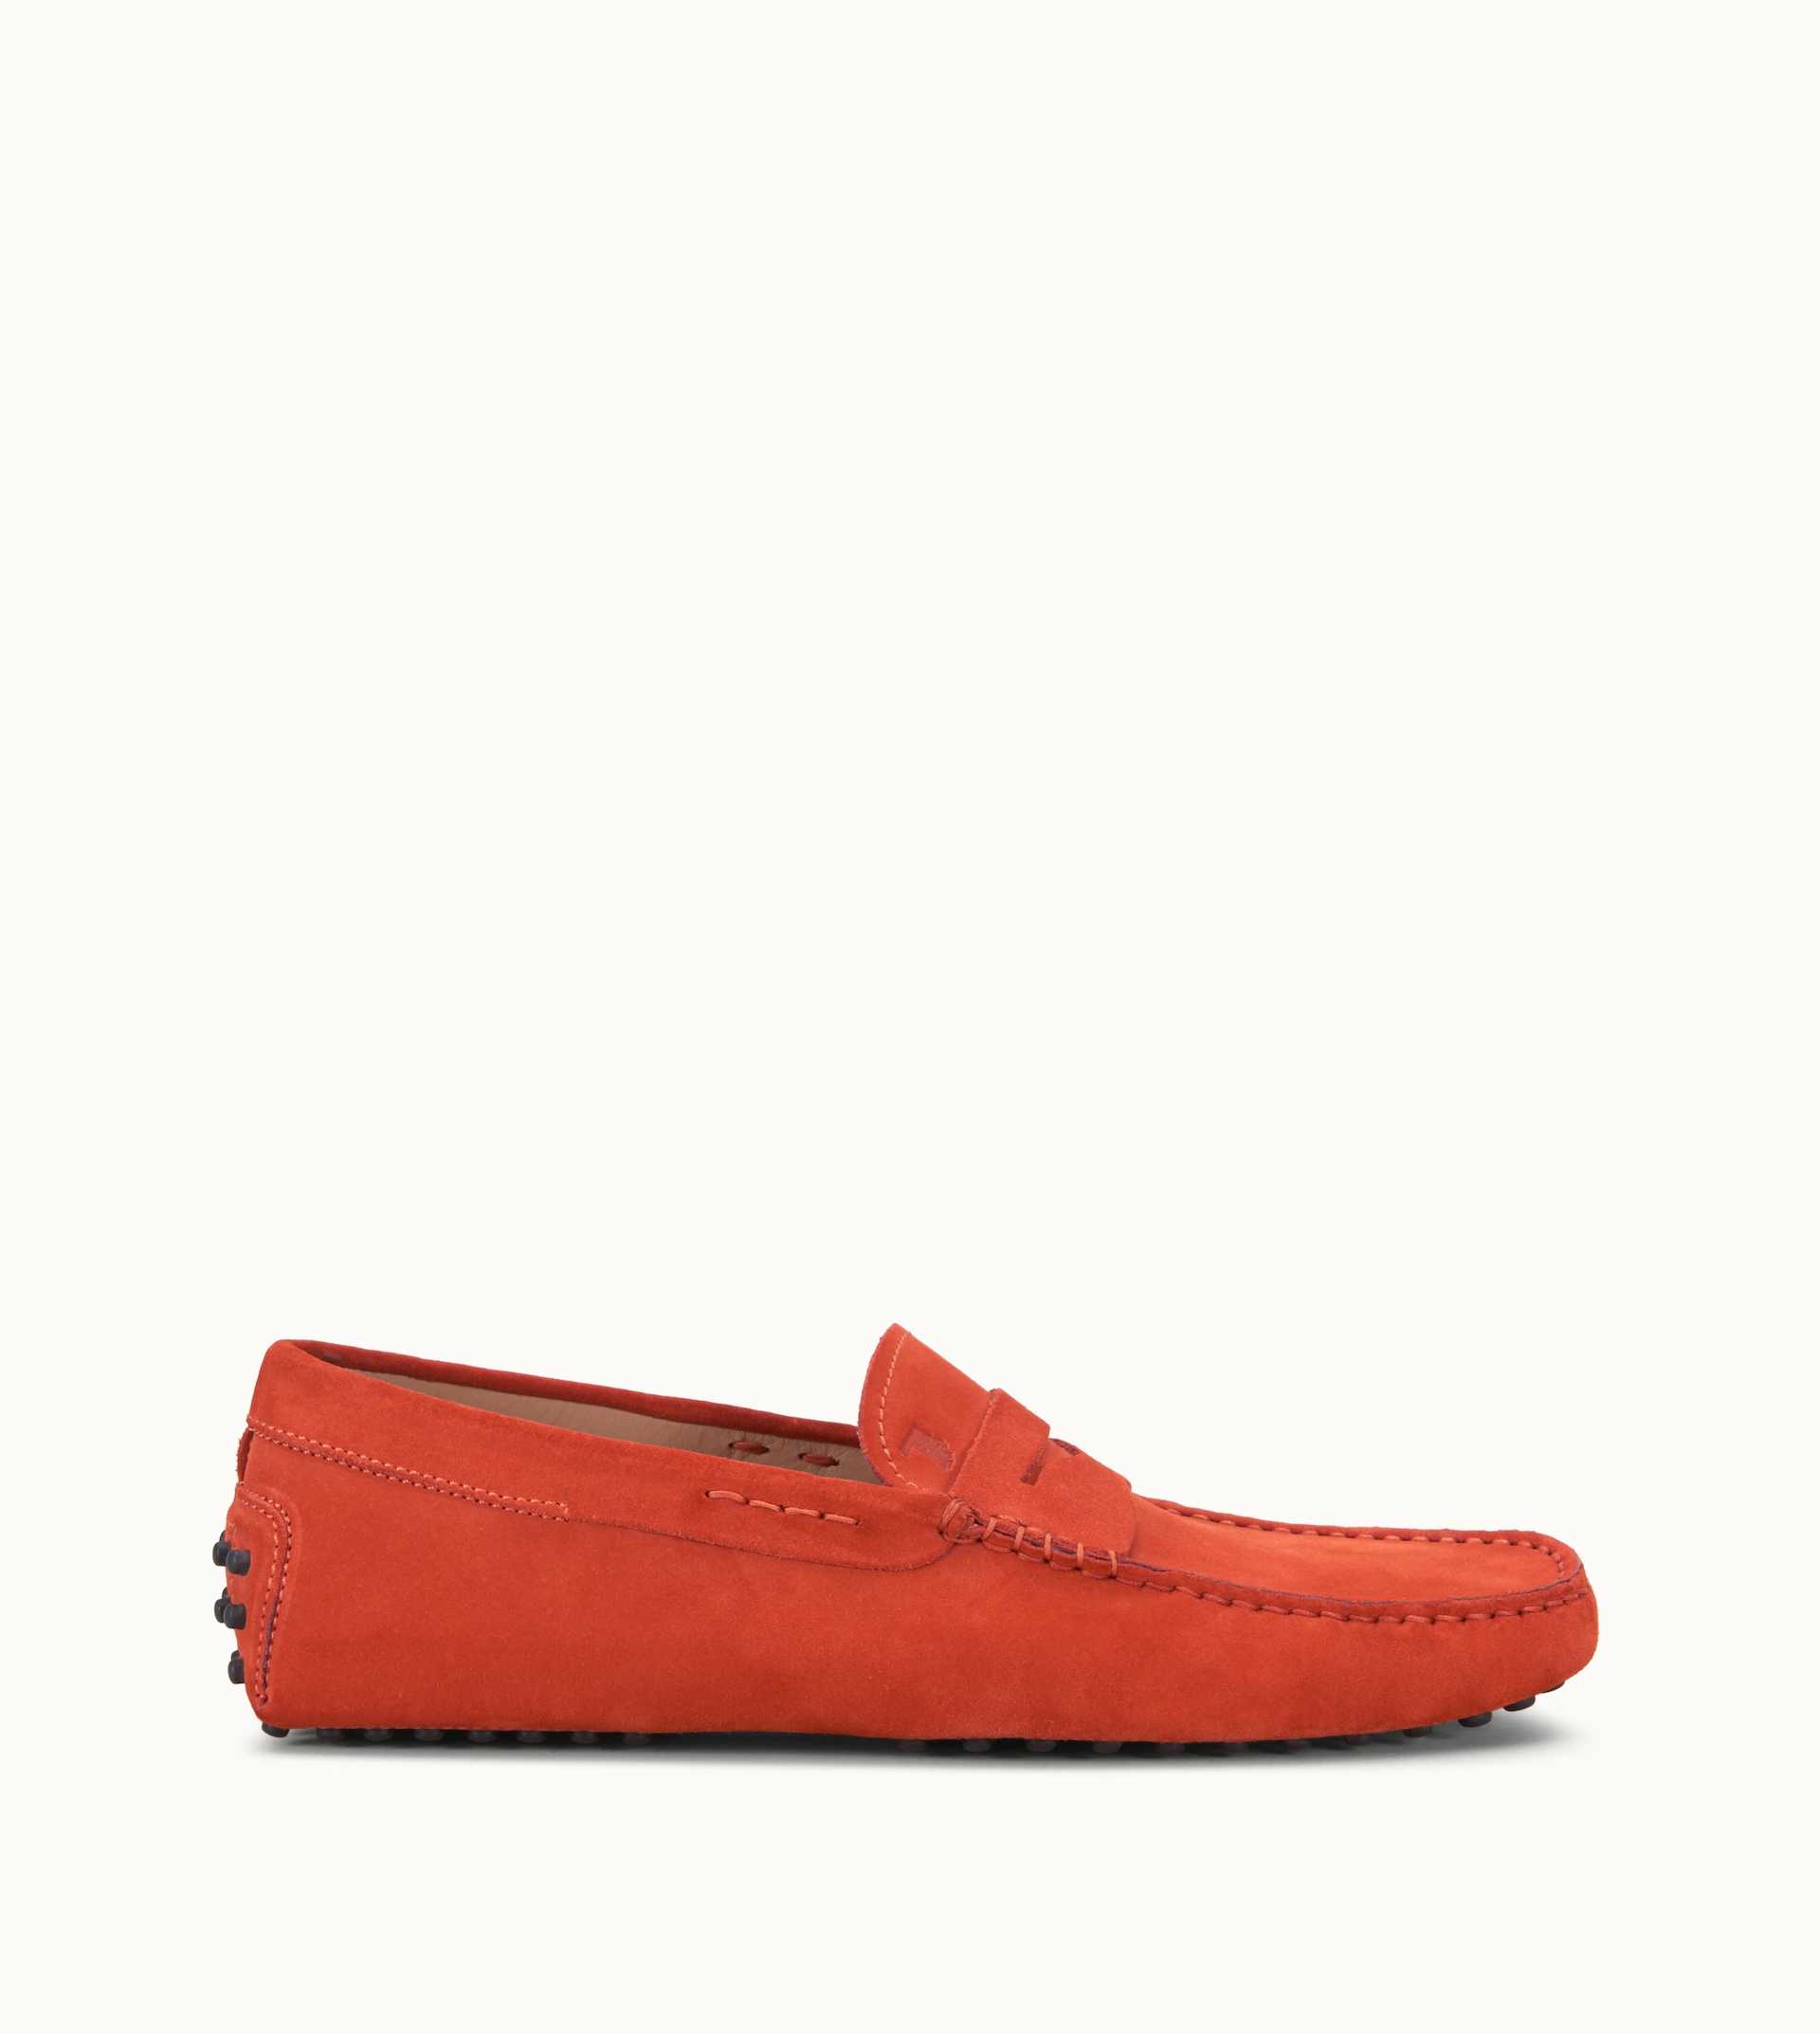 24068397d18 Tod's Gommino Driving Shoes In Suede In Orange | ModeSens